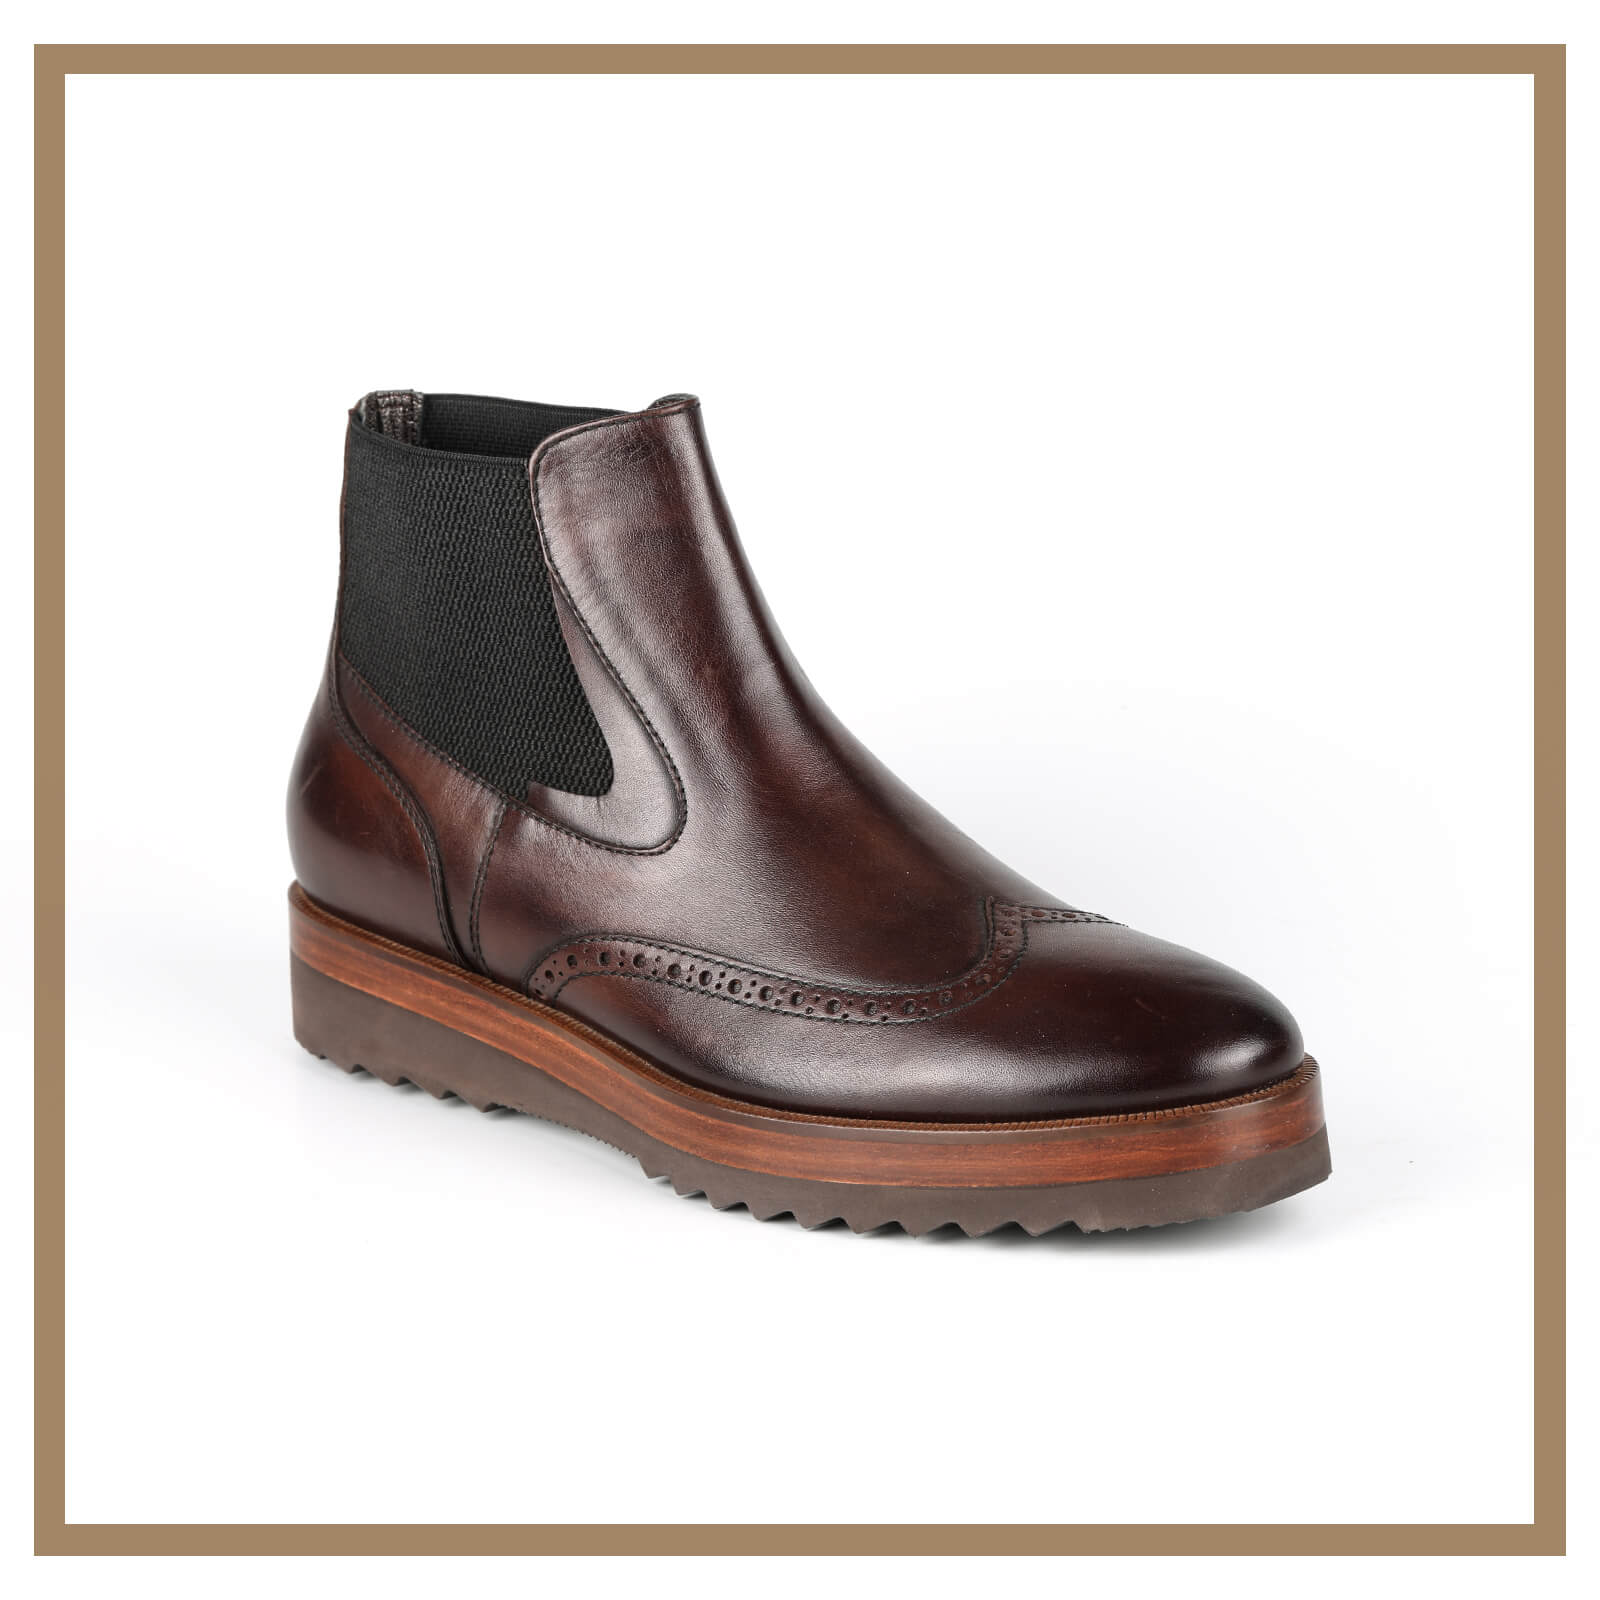 Leather Man Boots 009